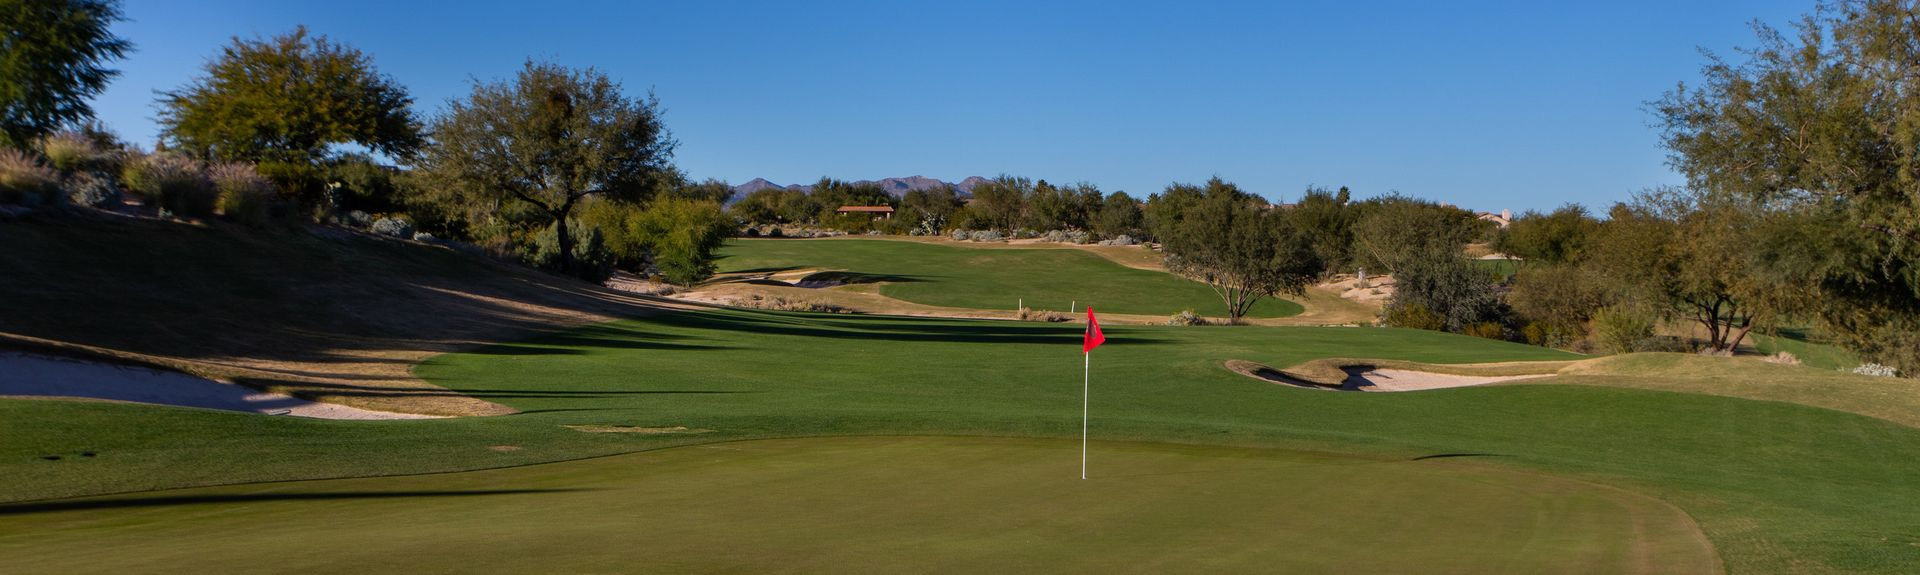 Silverbell Golf Course, Tucson, Arizona, United States of America